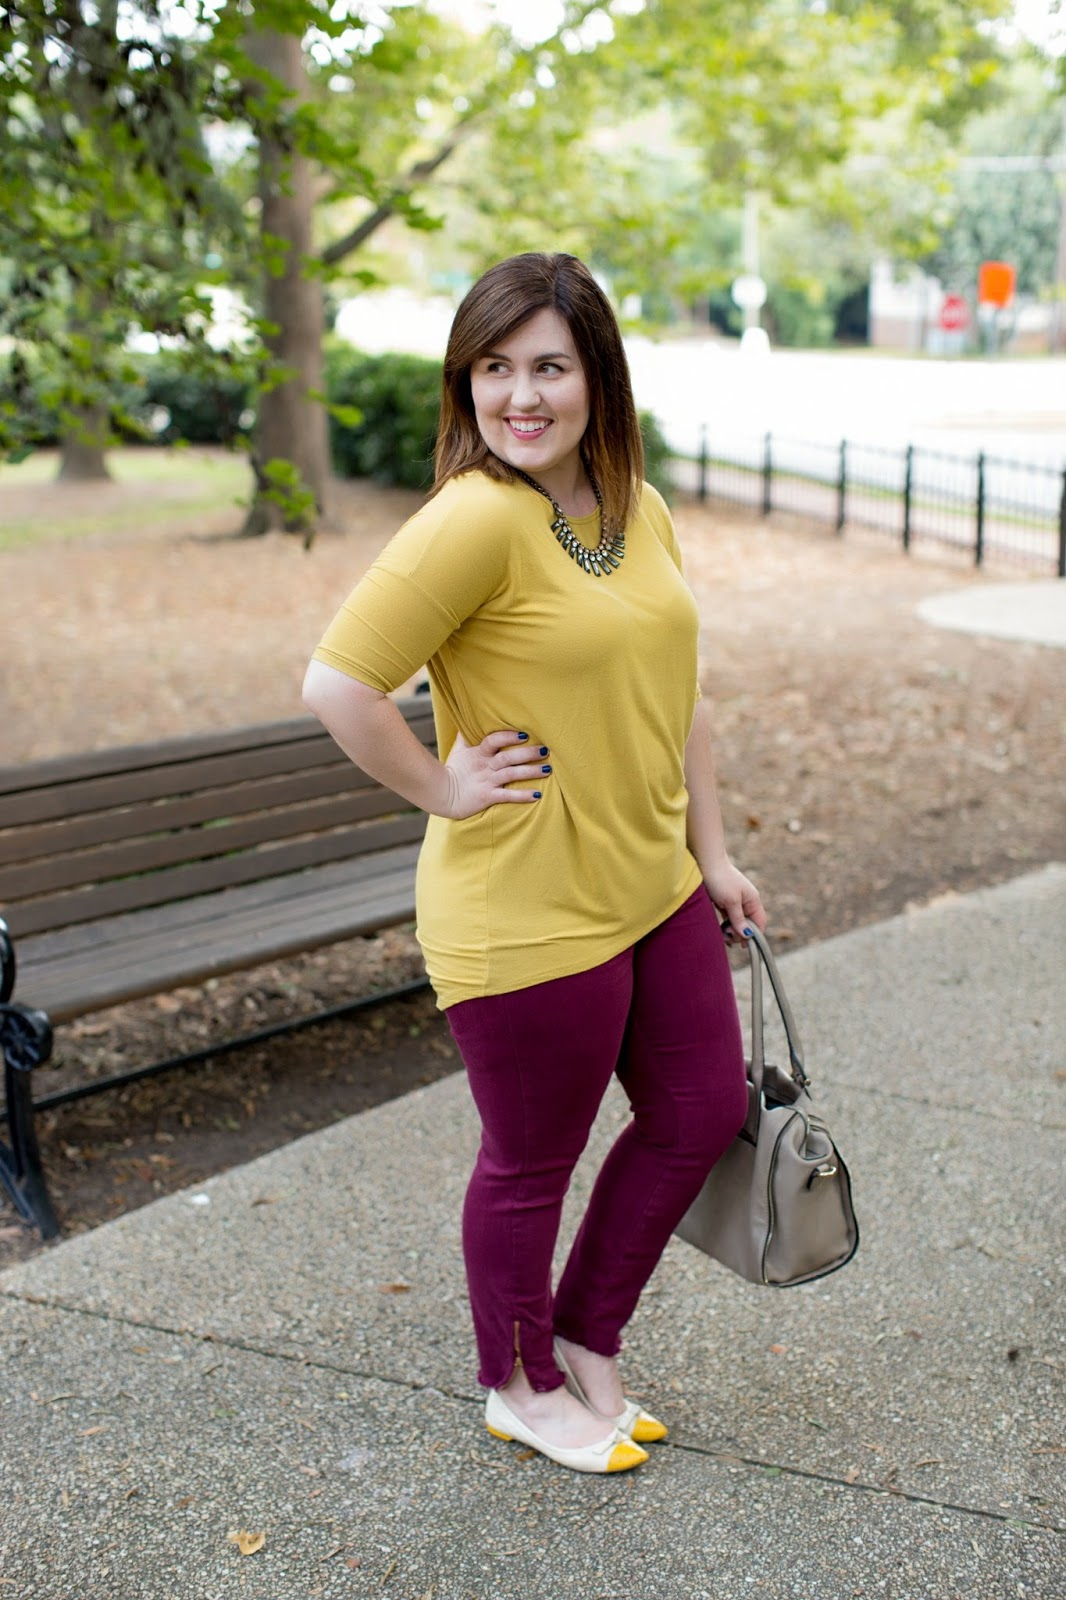 Rebecca Lately Lularoe Mustard Irma Pistola Jeans Stitch Fix Rockport Flats Urban Expressions Grey Bag